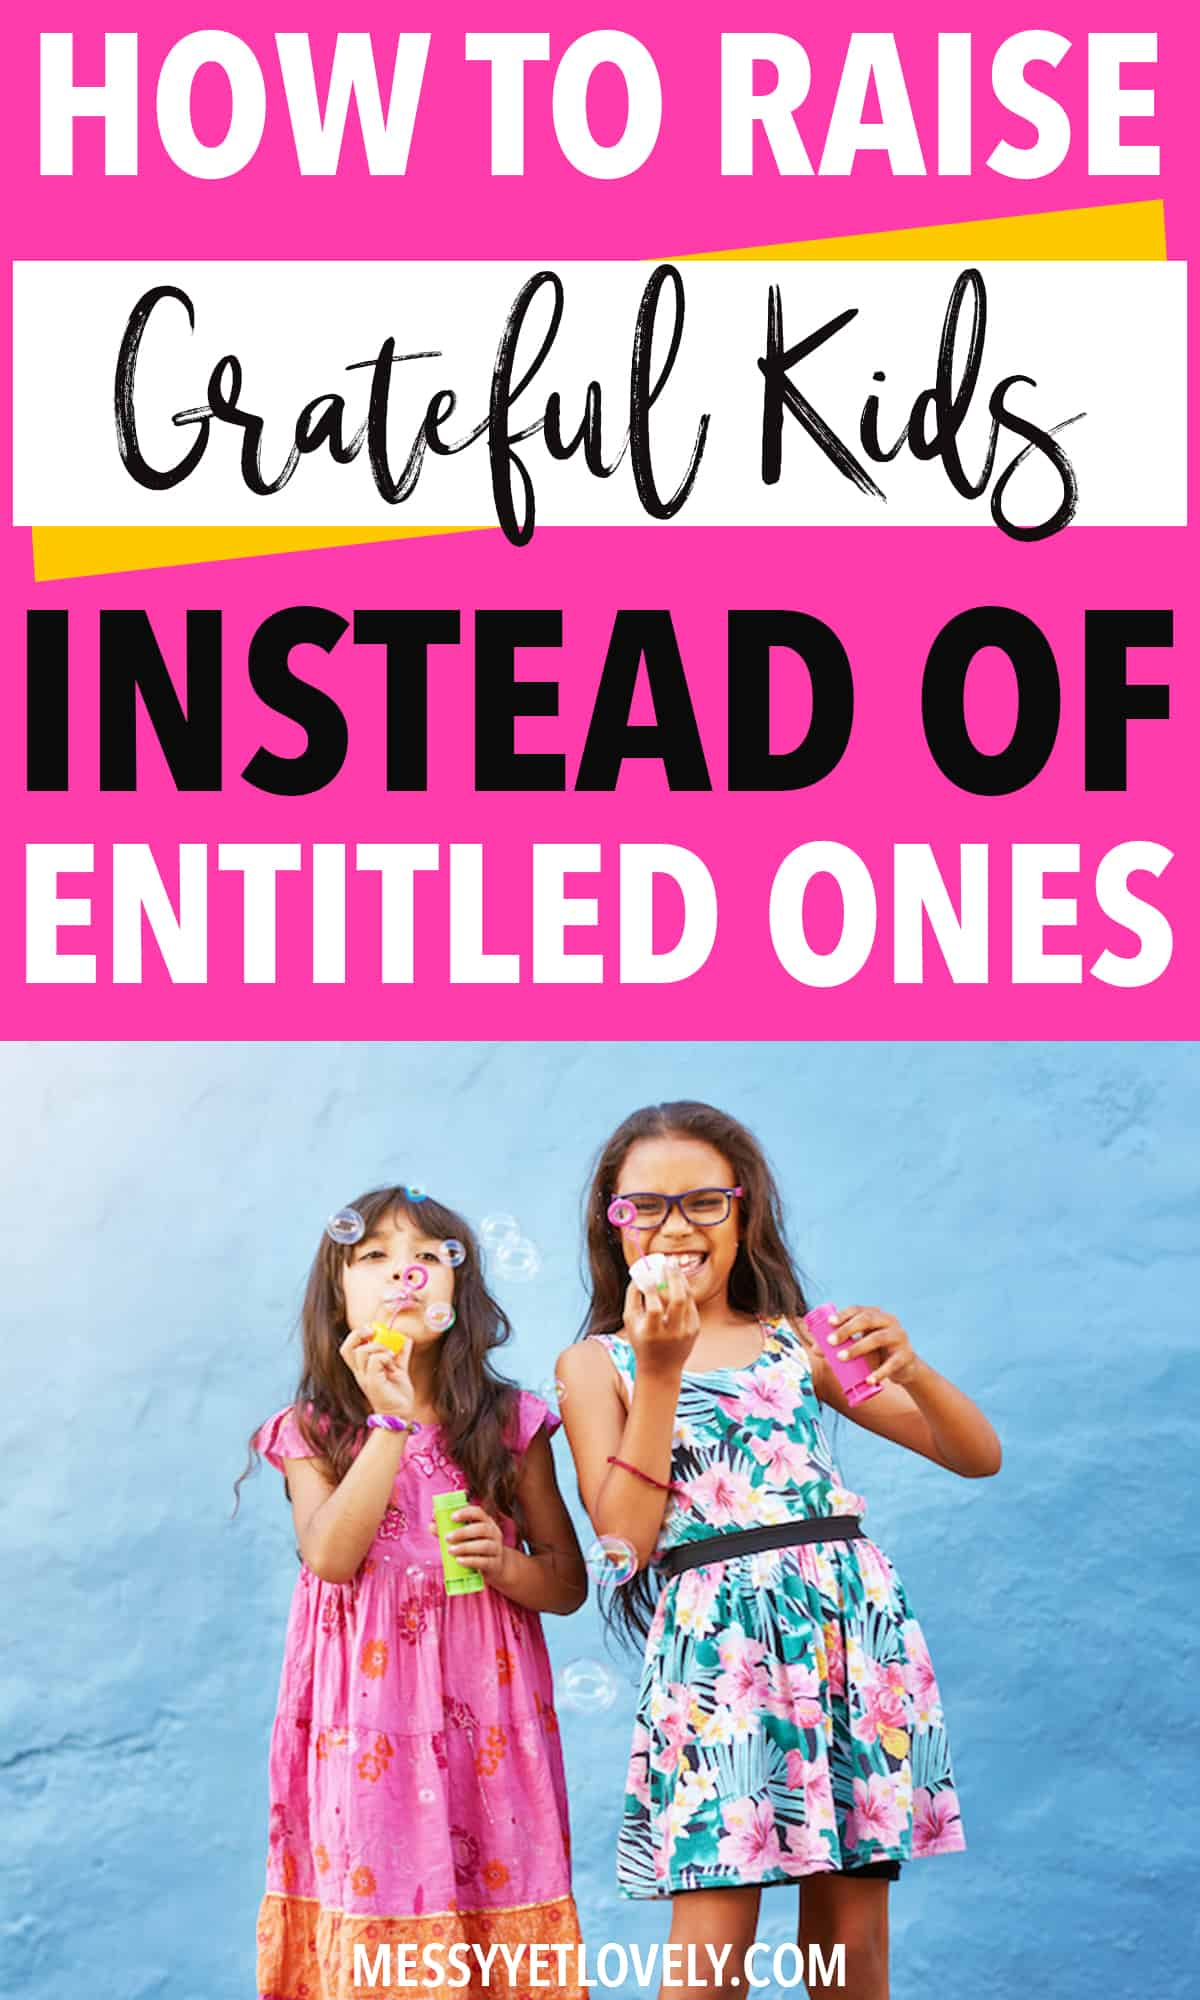 How to raise grateful children instead of complaining ones. Here are 10 tips to make kids more grateful and be happy with what they have. #gratefulkids #gratefulchildren #gratitude #teachgratitude